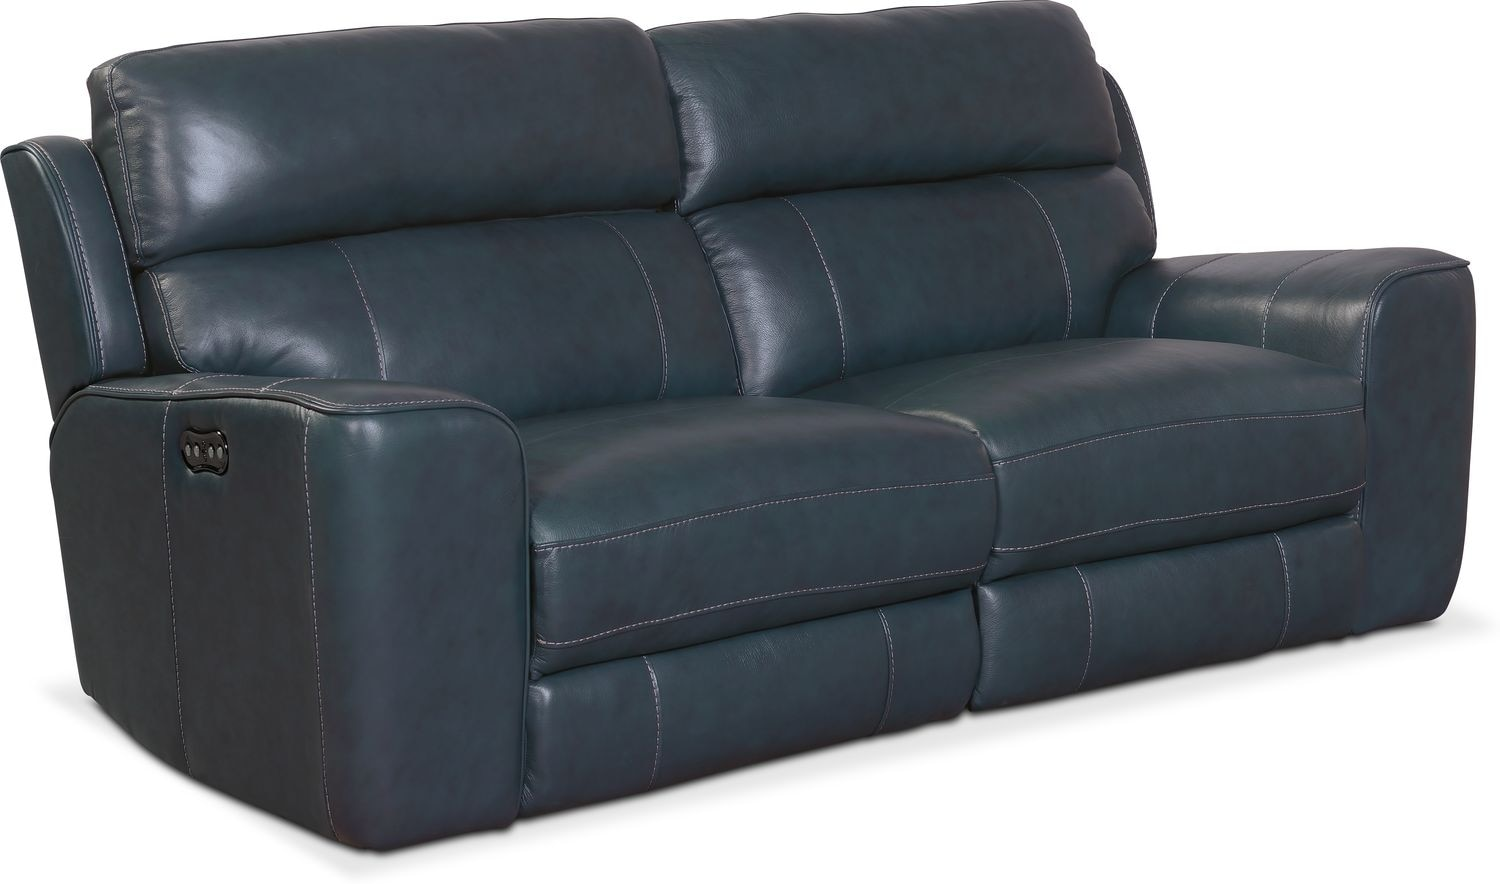 Living Room Furniture - Newport 2-Piece Dual-Power Reclining Sofa